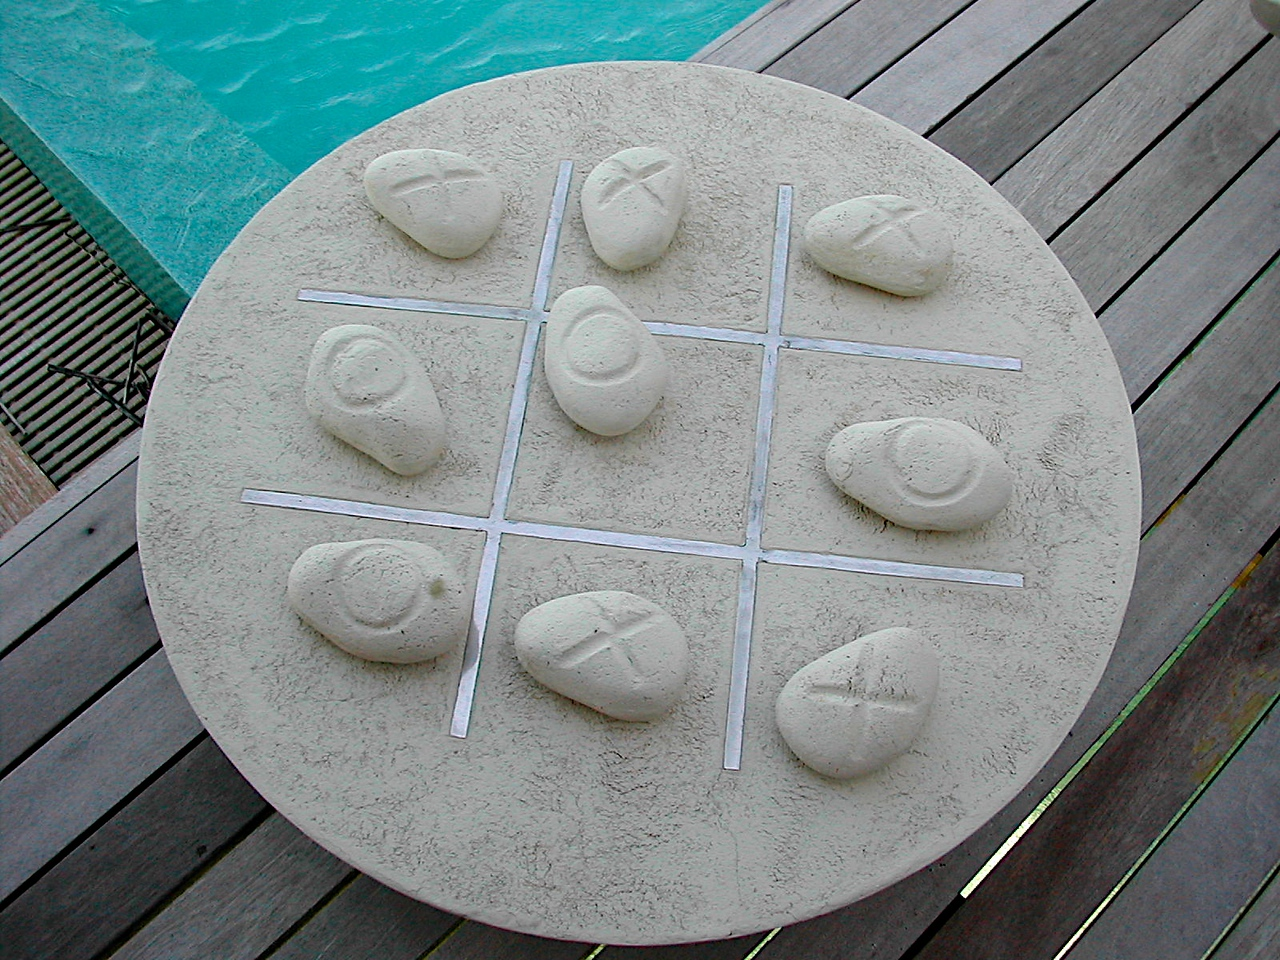 For games, play Tic Tac Toe on your own stone game set on your deck.